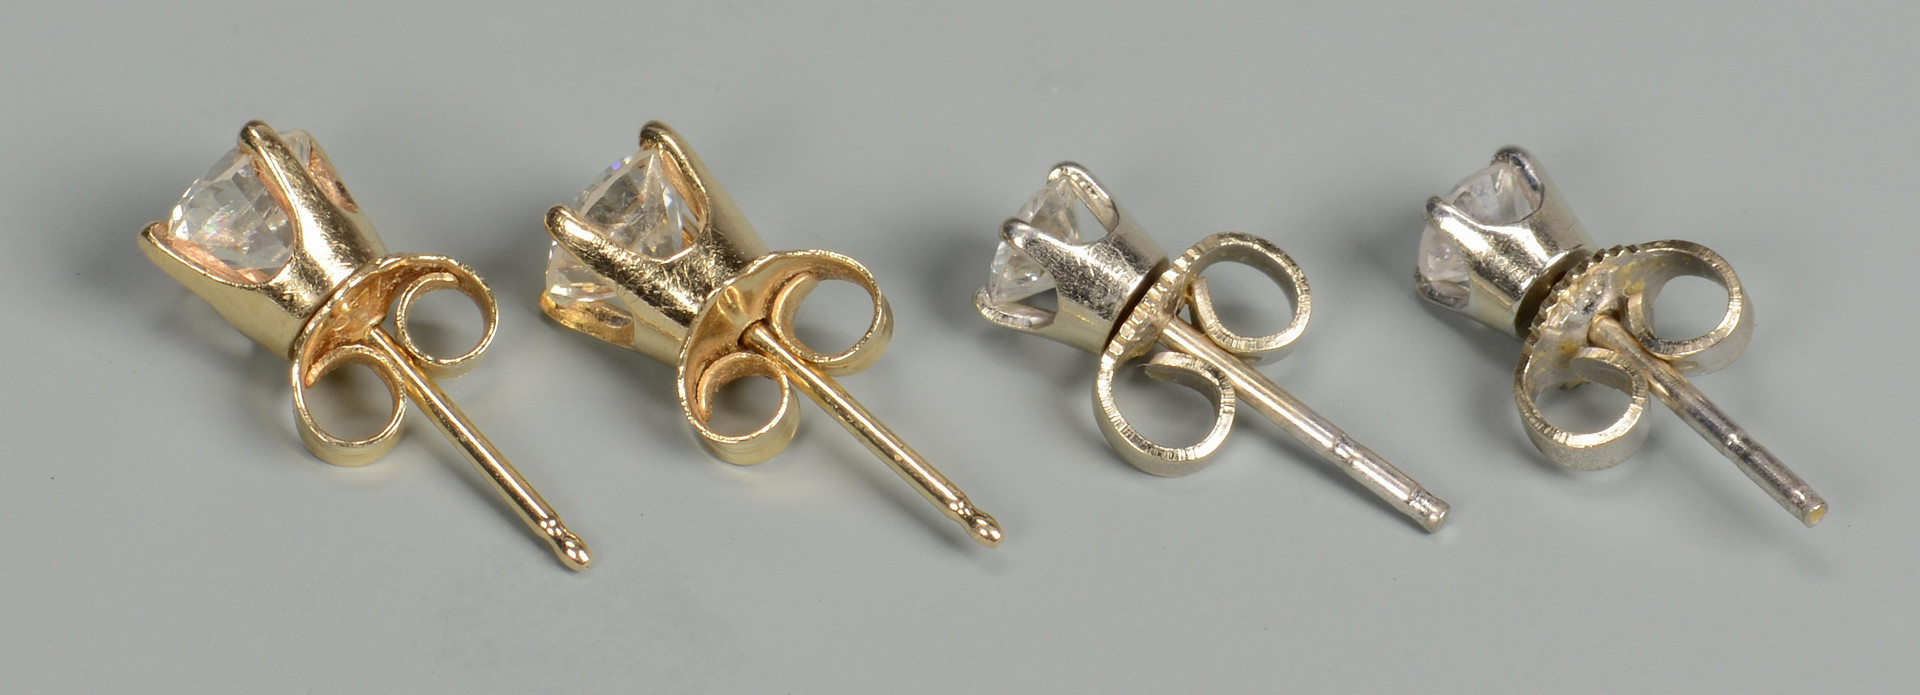 Lot 583: 2 Prs. Diamond Stud Earrings